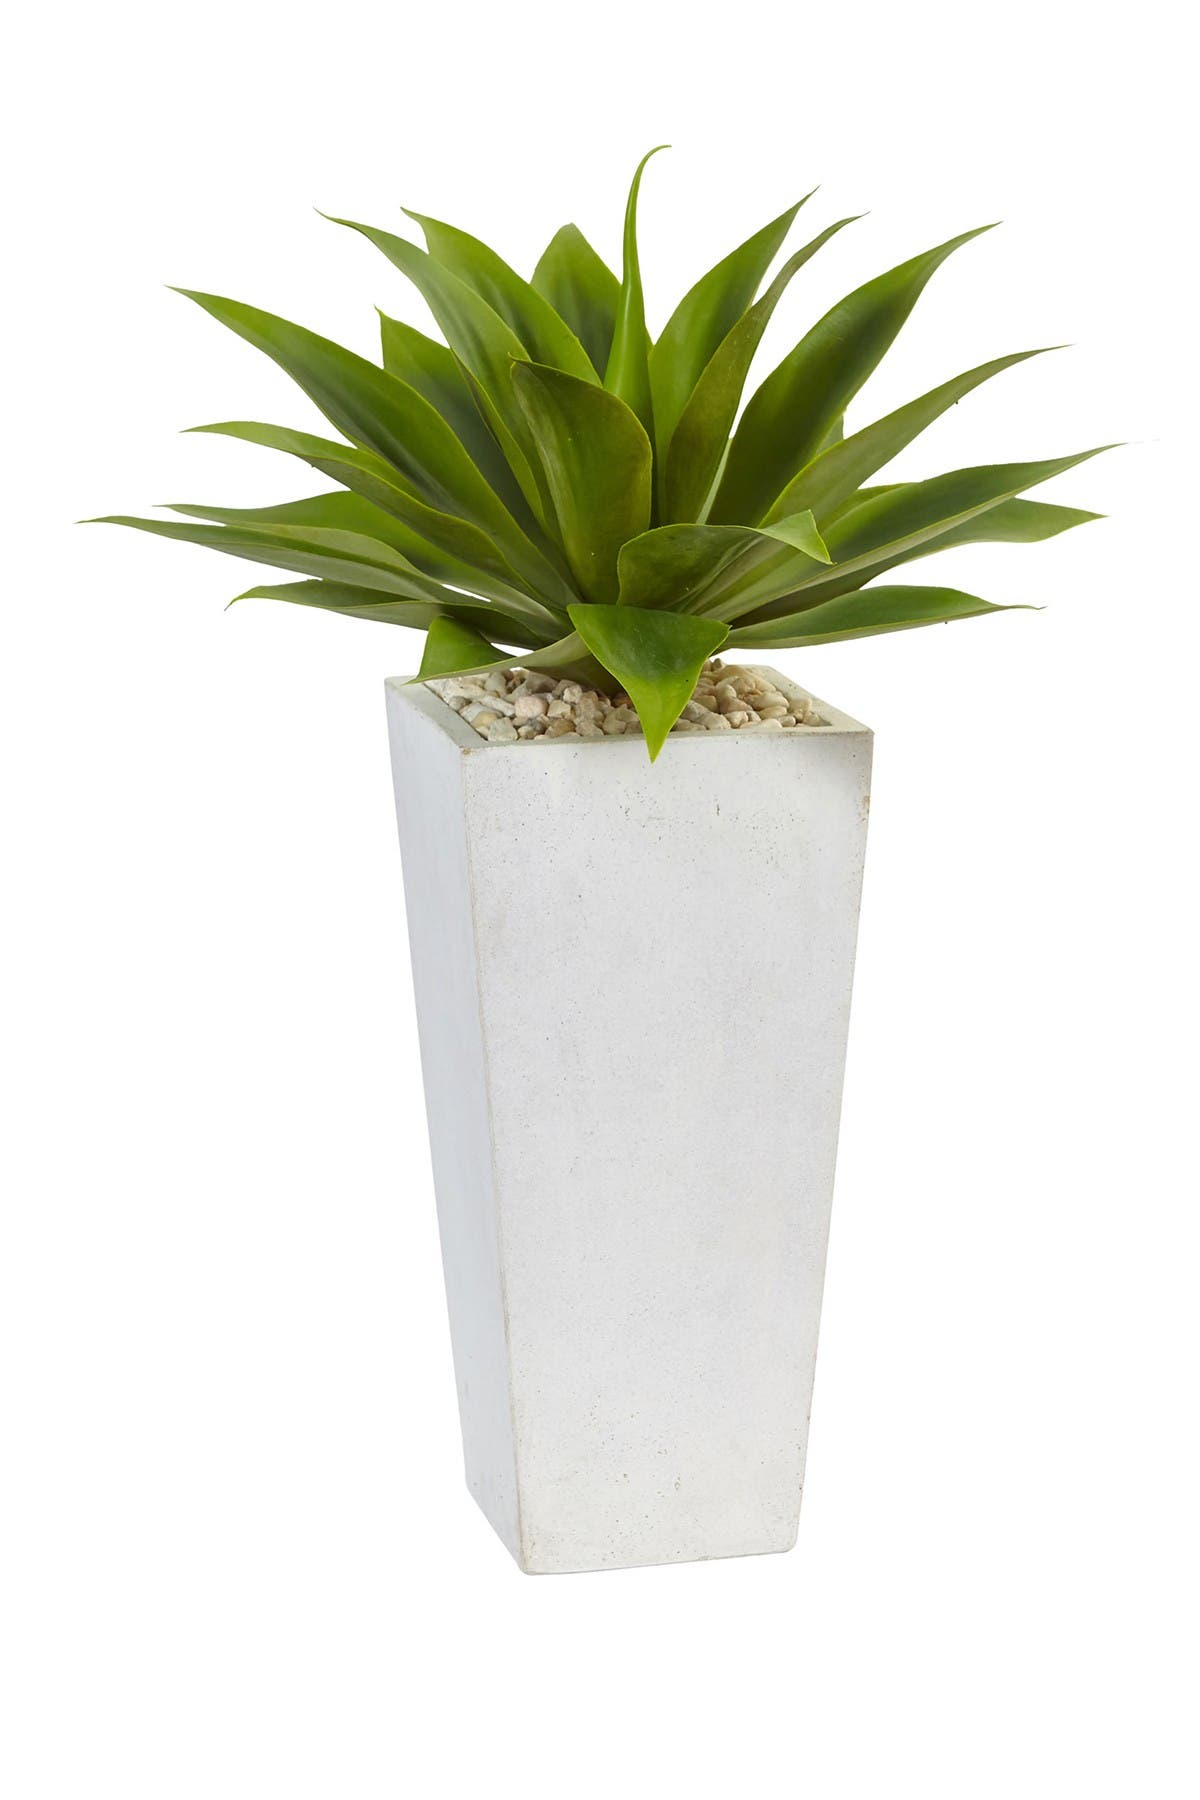 Image of NEARLY NATURAL Agave Artificial Plant in White Planter - Green